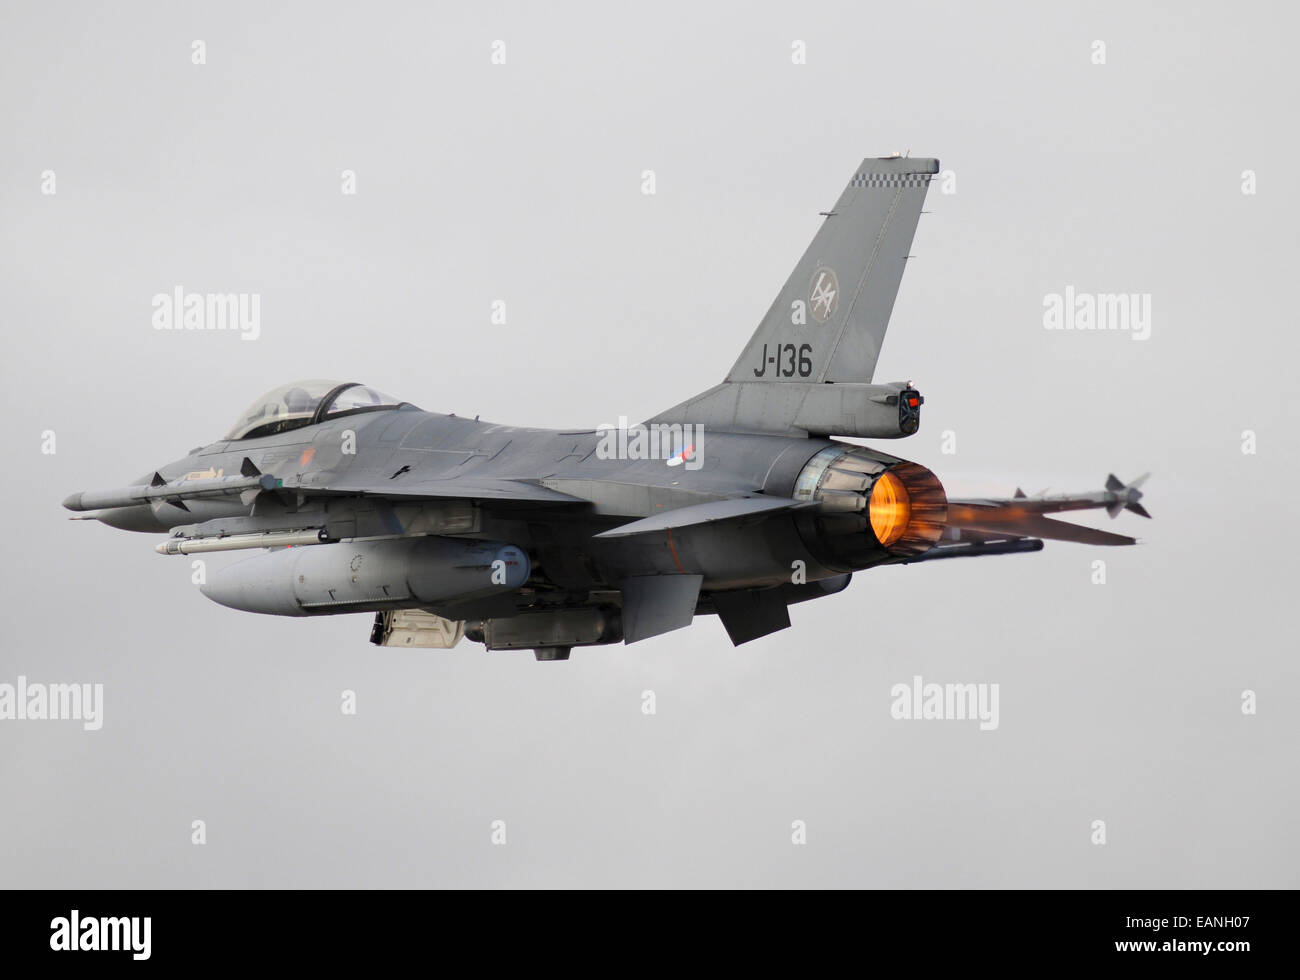 Dutch Air Force F-16AM taking off with full afterburner during NATO TLP, Albacete, Spain. Stock Photo